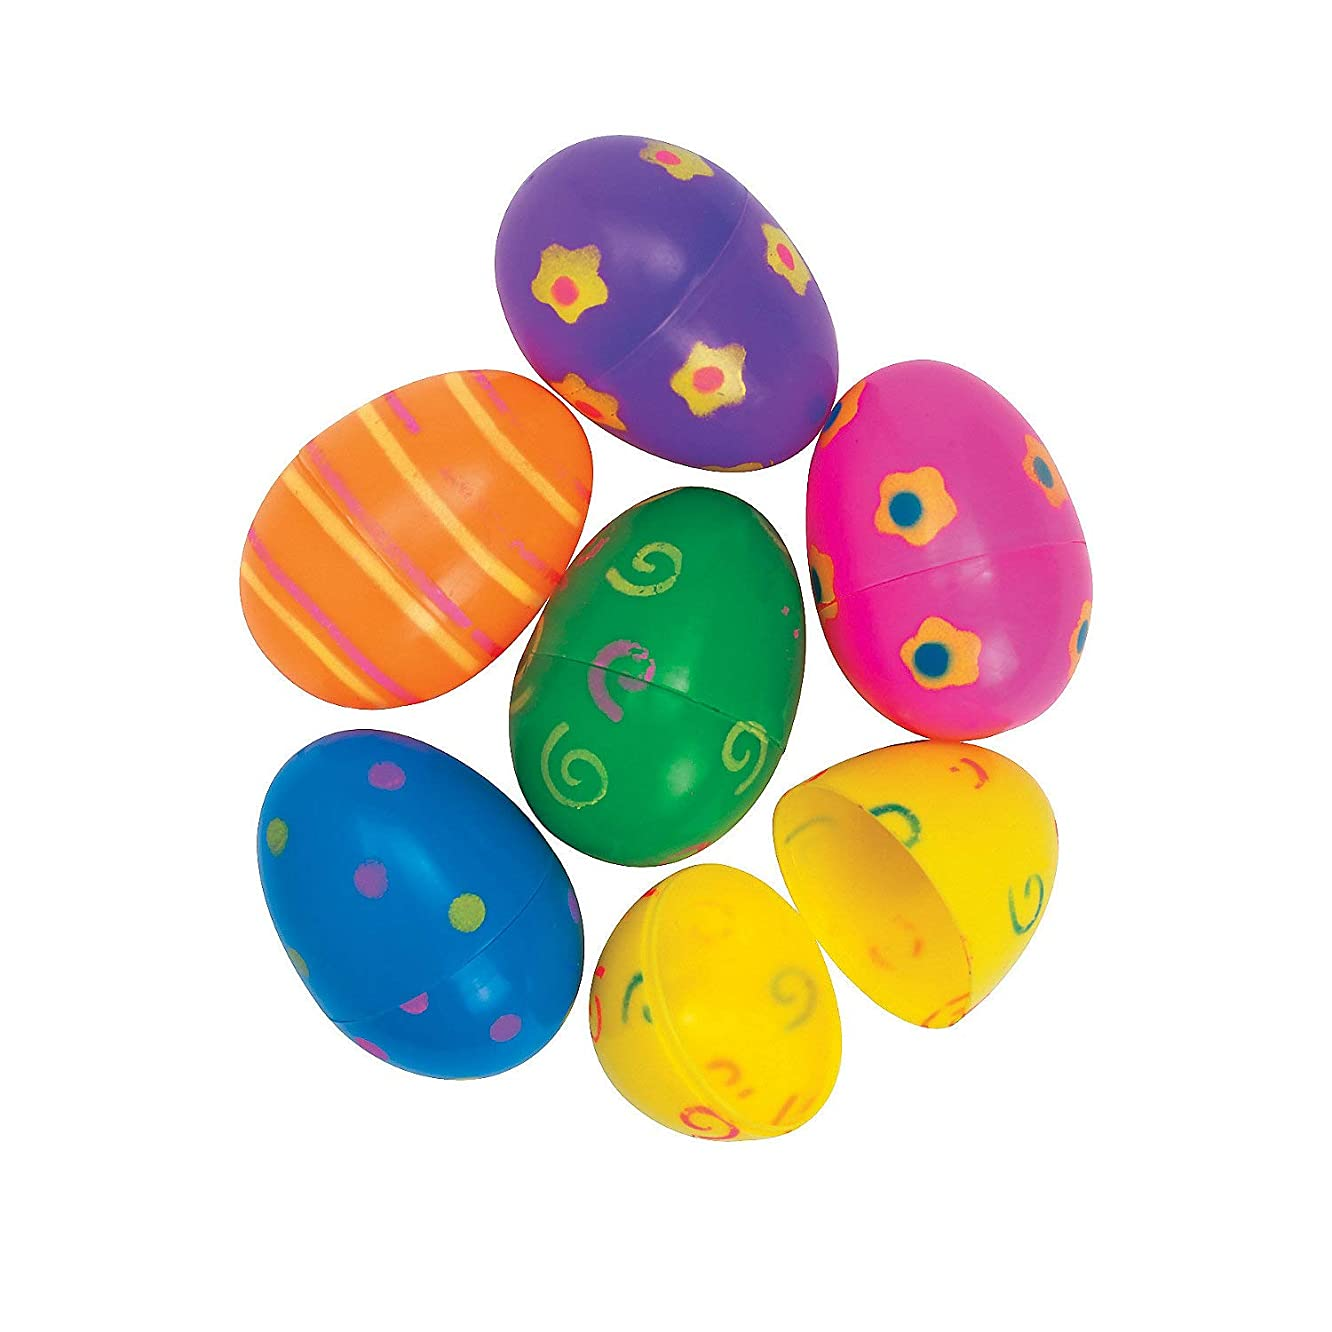 Fun Express - Plastic Jumbo Bright Printed Easter Eggs for Easter - Party Supplies - Containers & Boxes - Plastic Containers - Easter - 12 Pieces